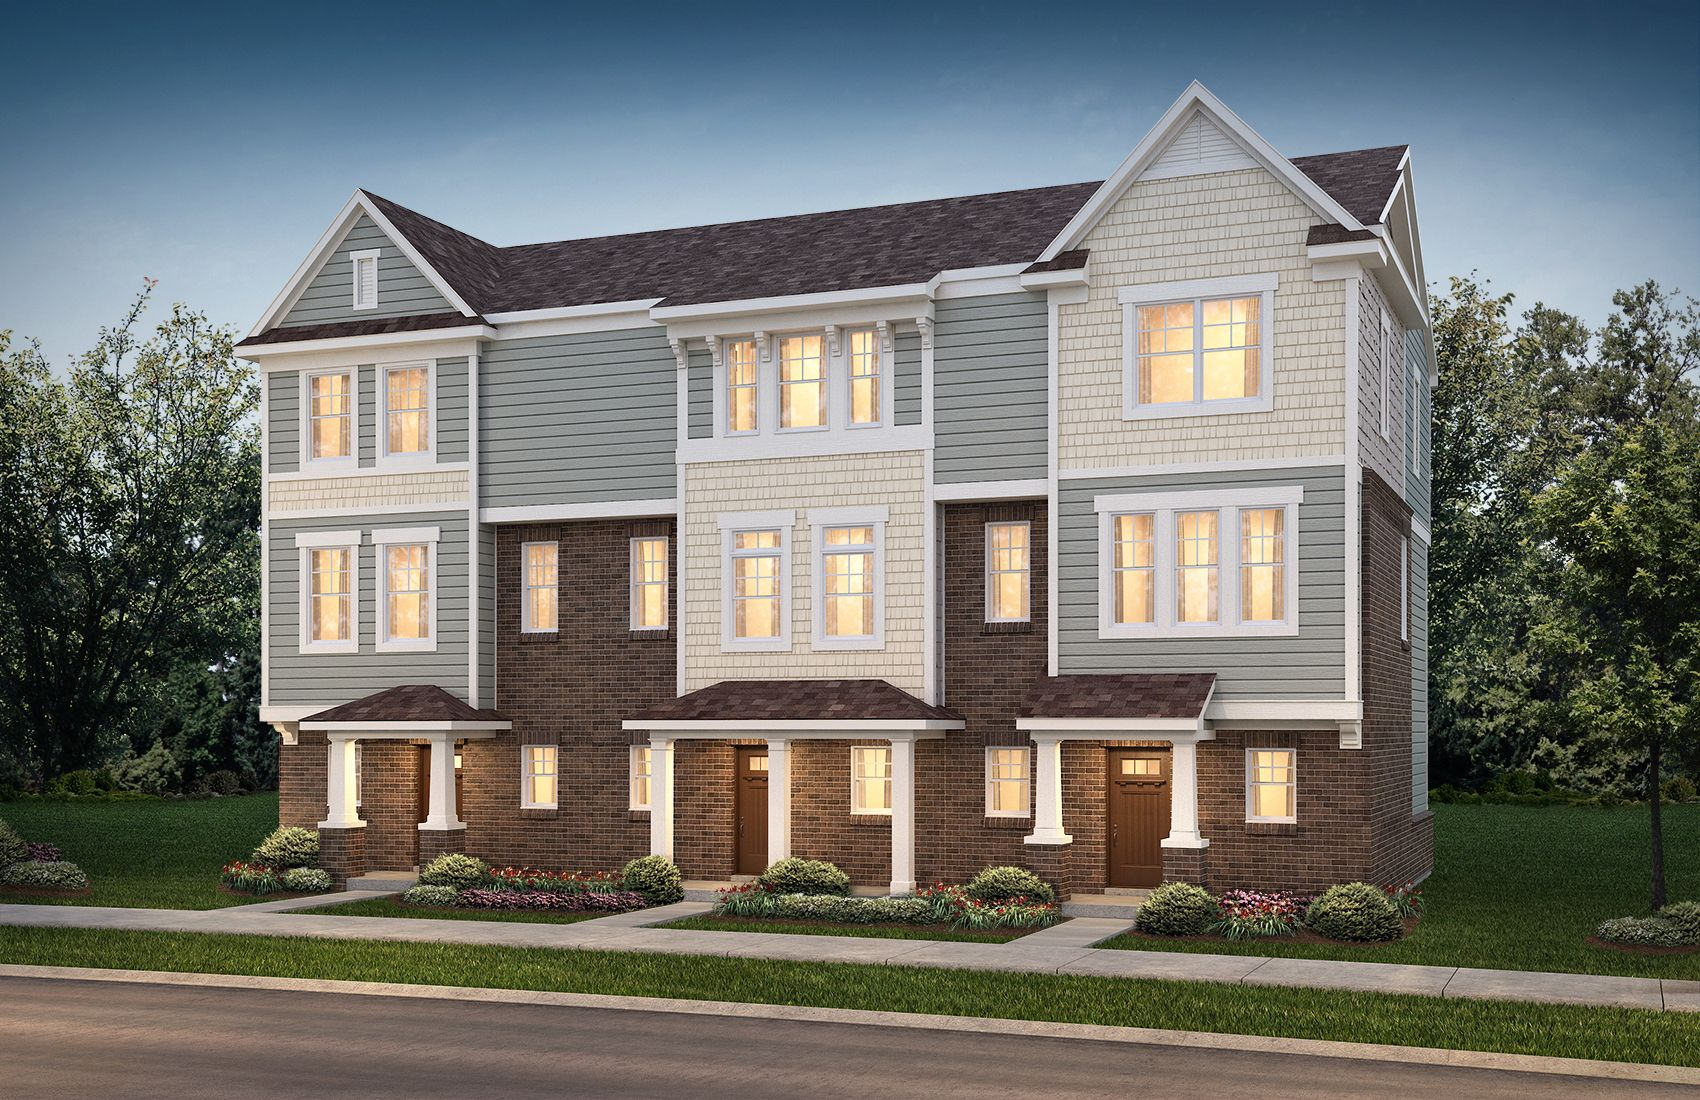 3 unit town home building